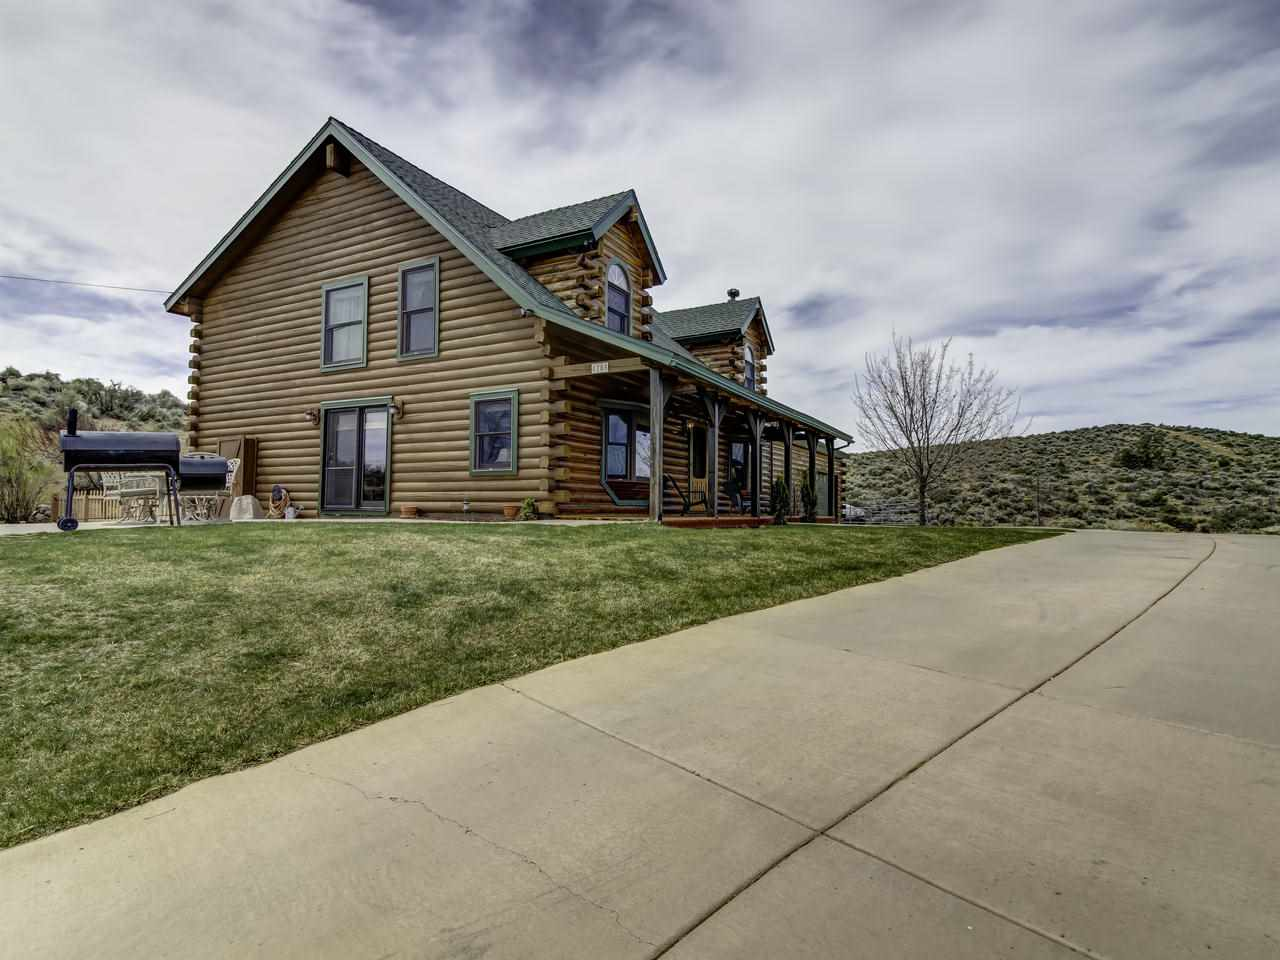 Image for 8705 Spearhead Way, Reno, NV 89506